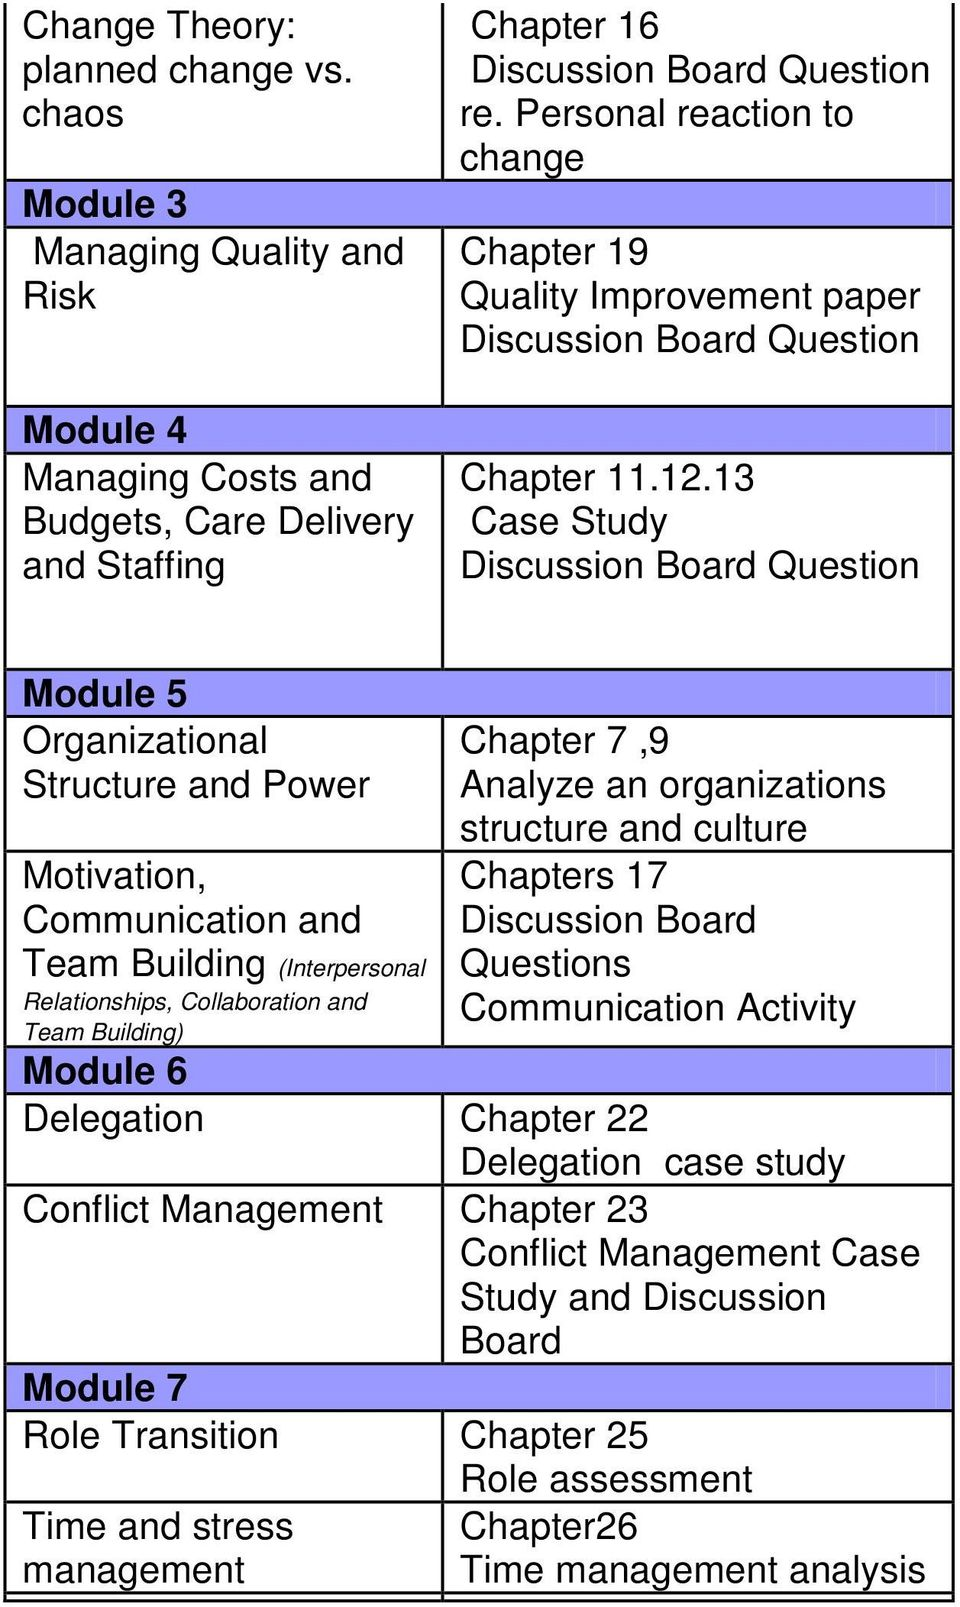 13 Case Study Discussion Board Question Module 5 Organizational Structure and Power Motivation, Communication and Team Building (Interpersonal Relationships, Collaboration and Team Building) Chapter